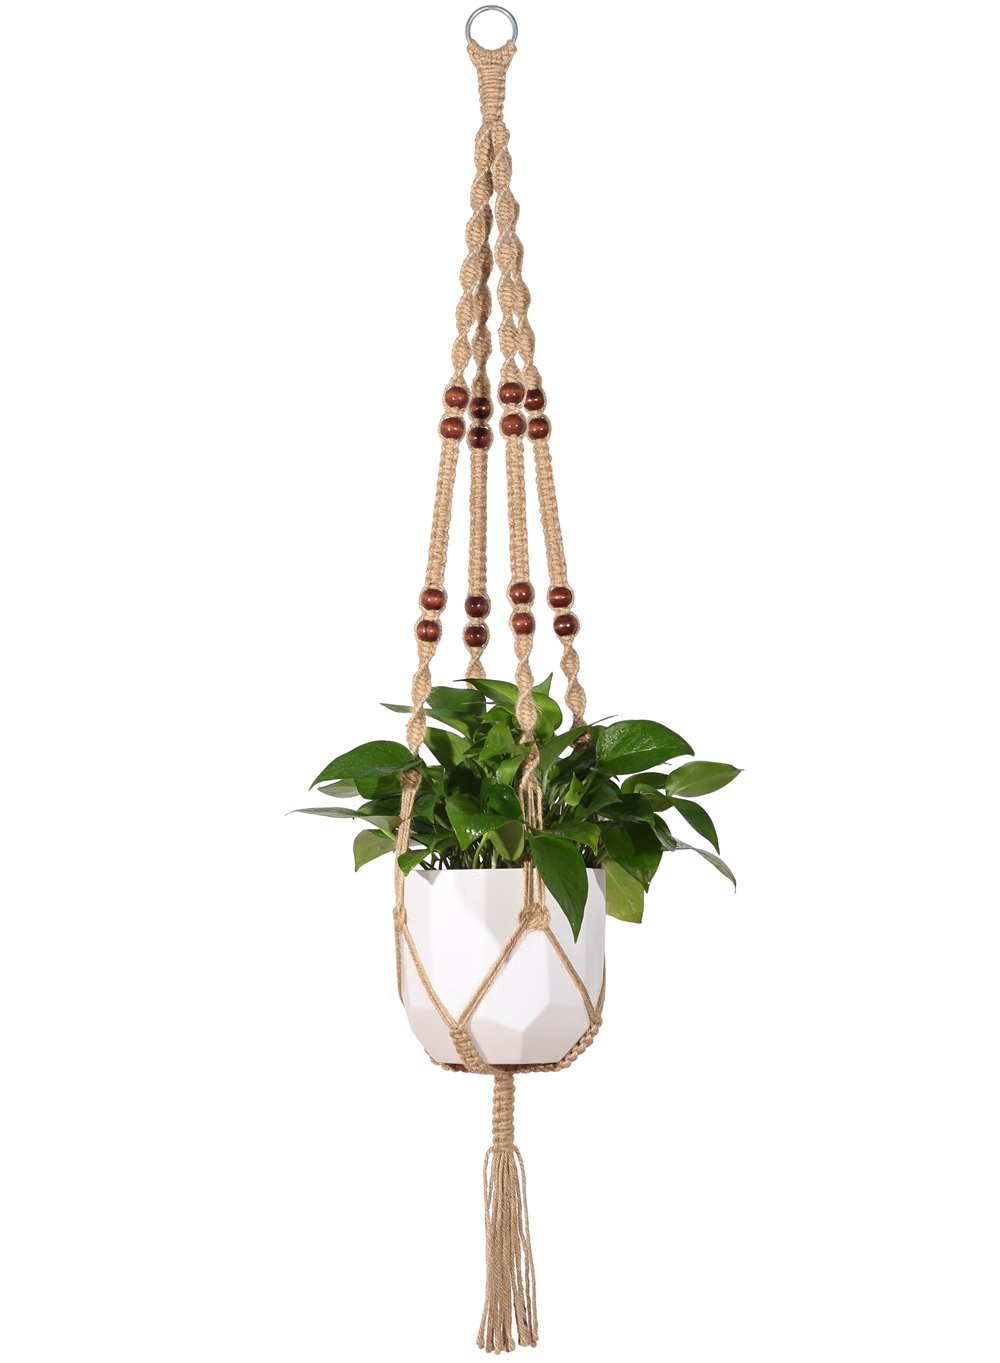 Mkono Macrame Plant Hanger Indoor Outdoor Hanging Planter Basket Jute Rope  With Beads 4 Legs 48 Inch